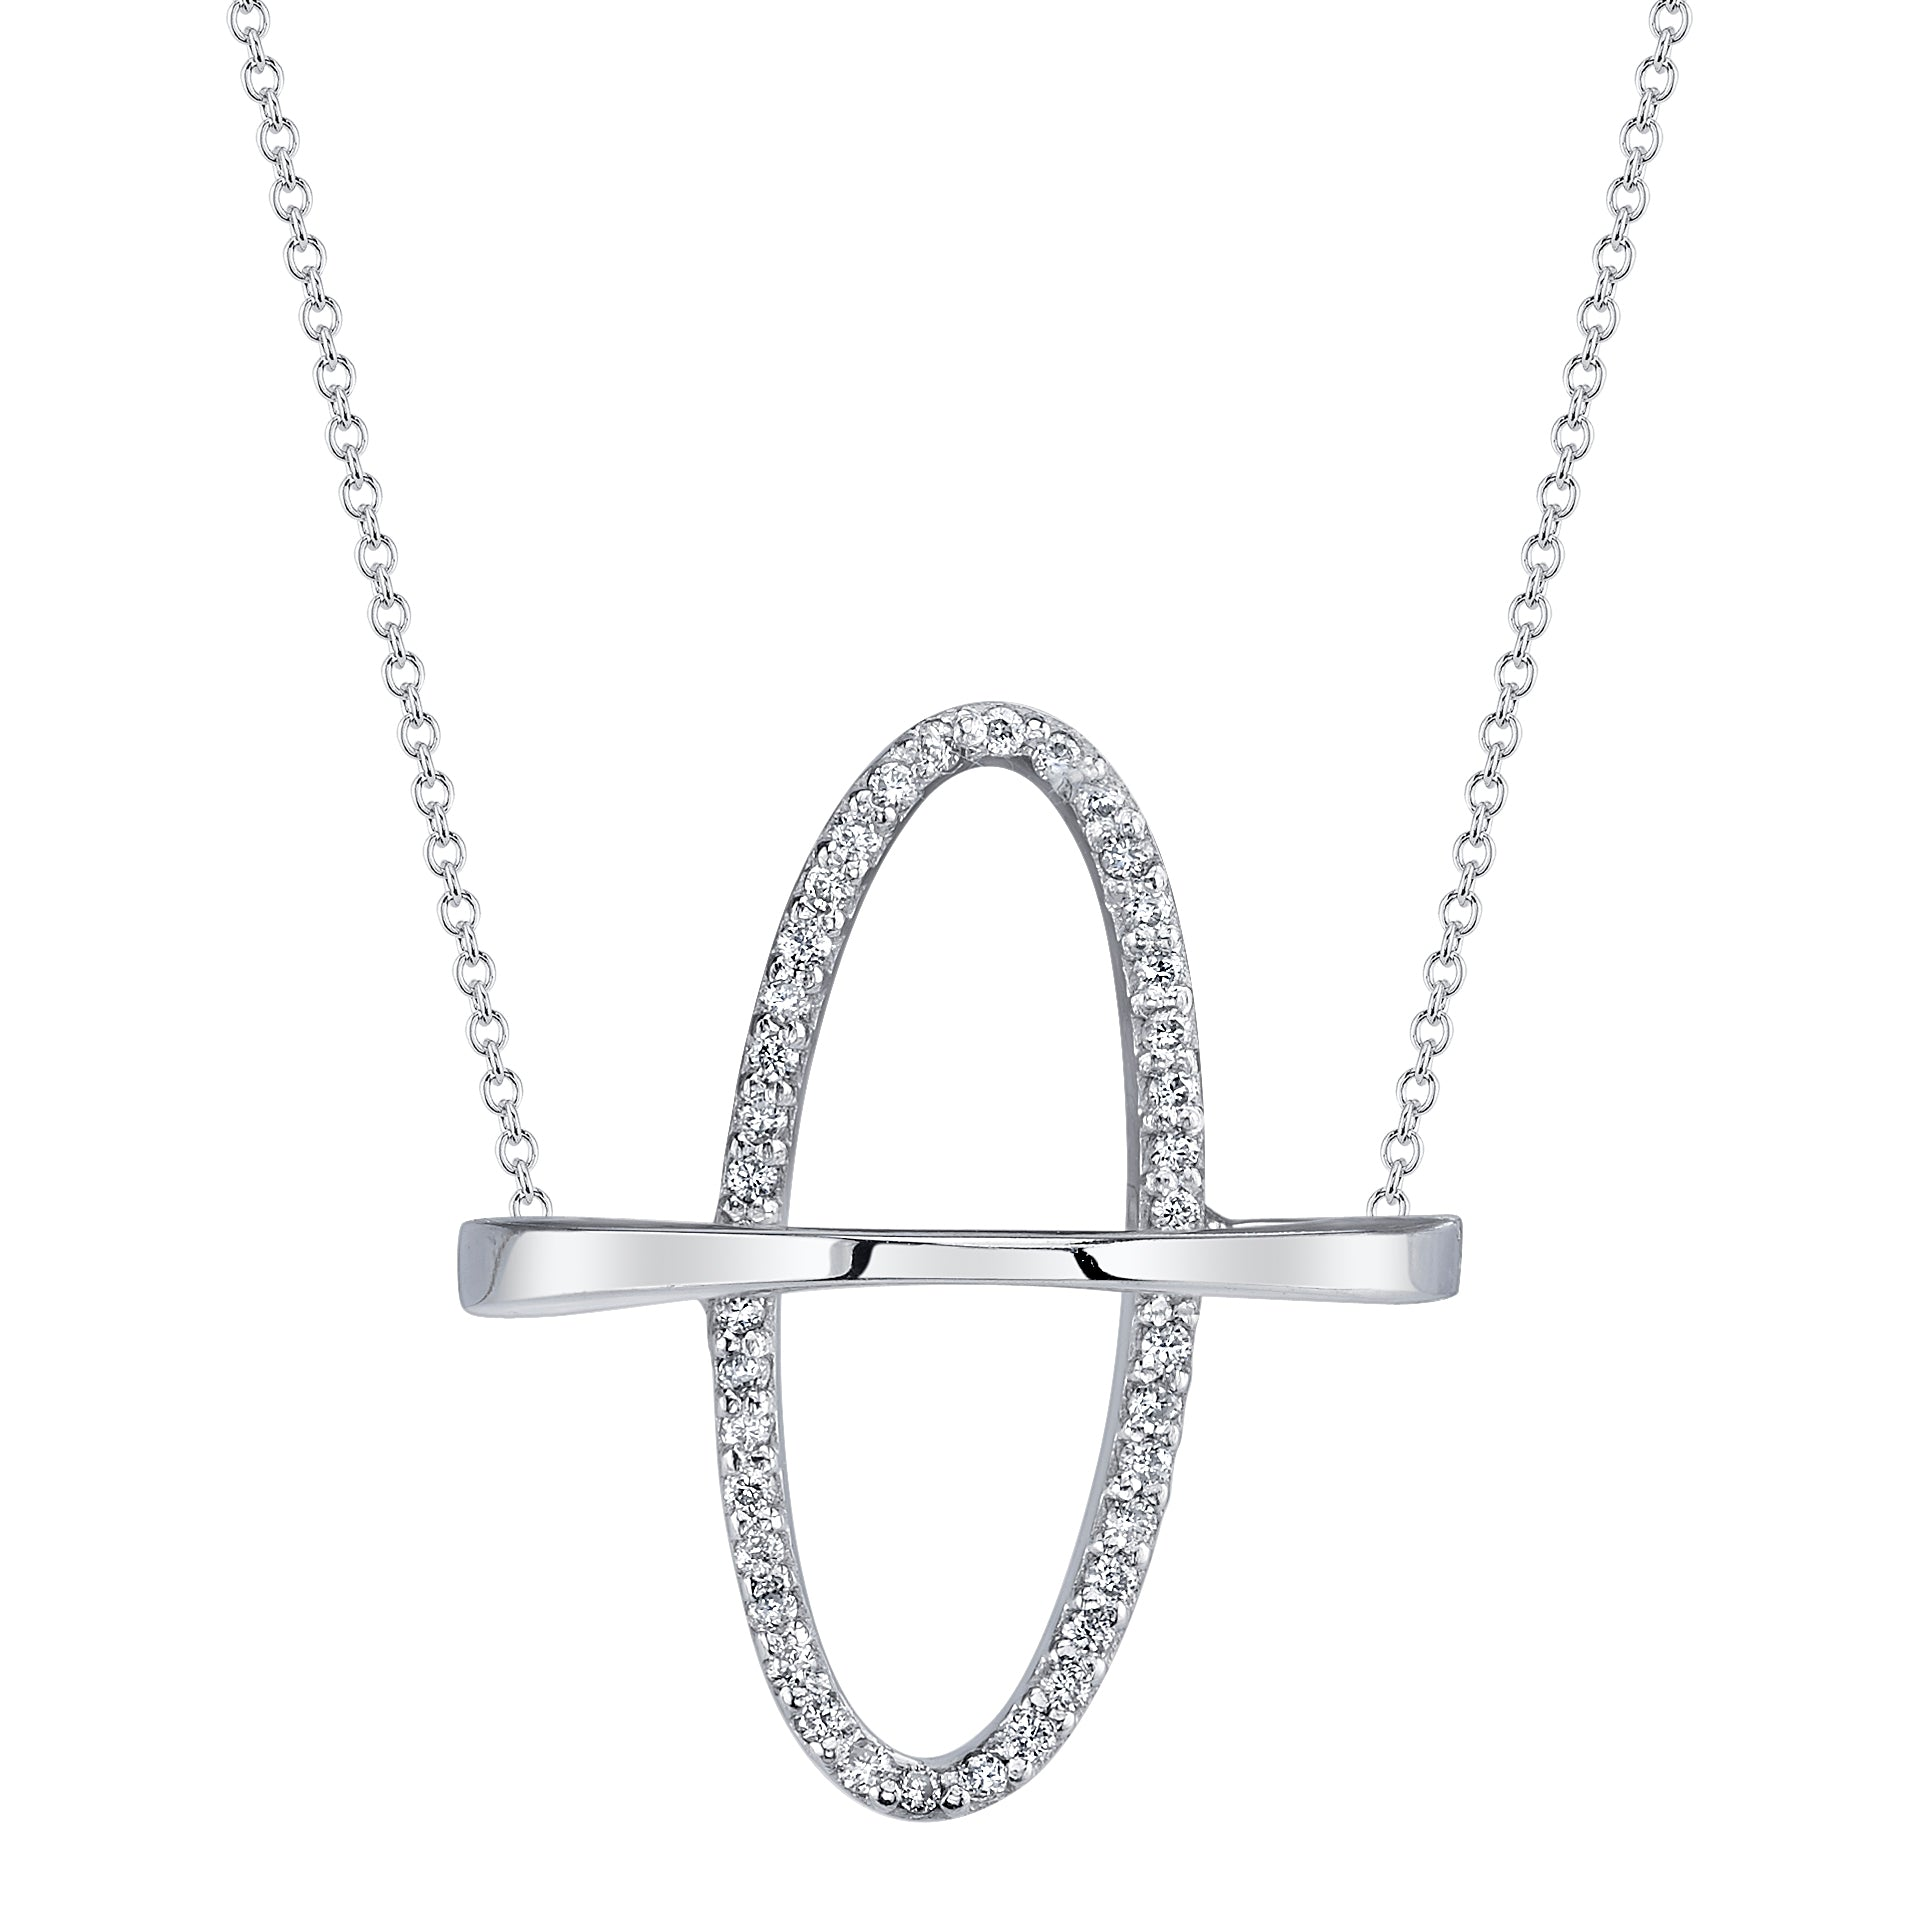 Arch Boreal Necklace With White Pavé Diamonds - Gabriela Artigas